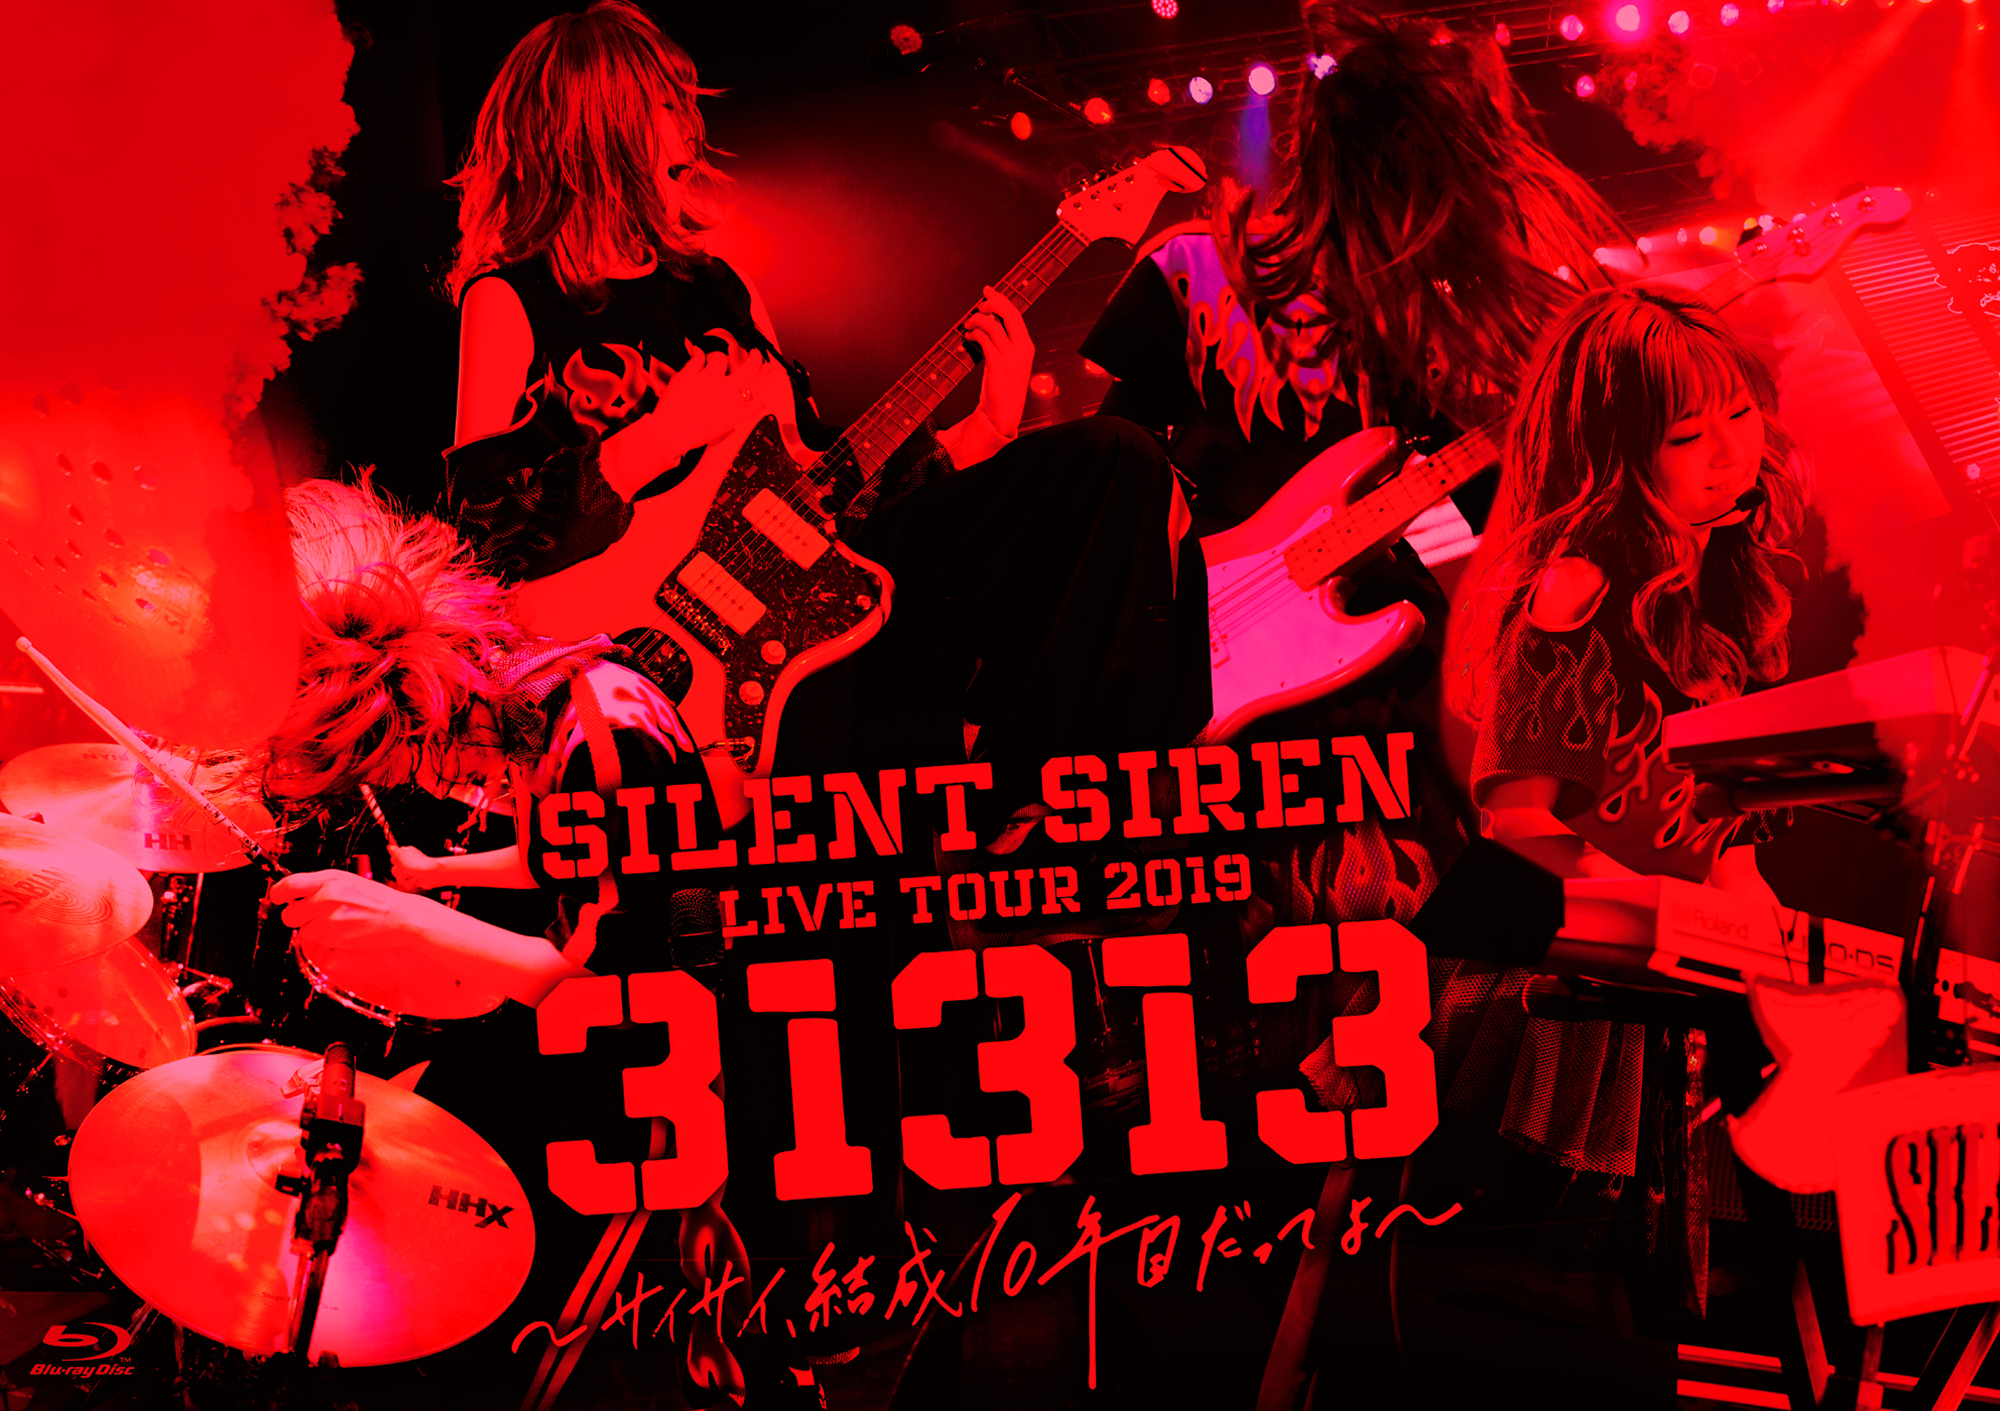 『SILENT SIREN LIVE TOUR 2019「31313」〜サイサイ、結成10年目だってよ〜 supported by 天下一品 @ Zepp DiverCity』Blu-ray盤